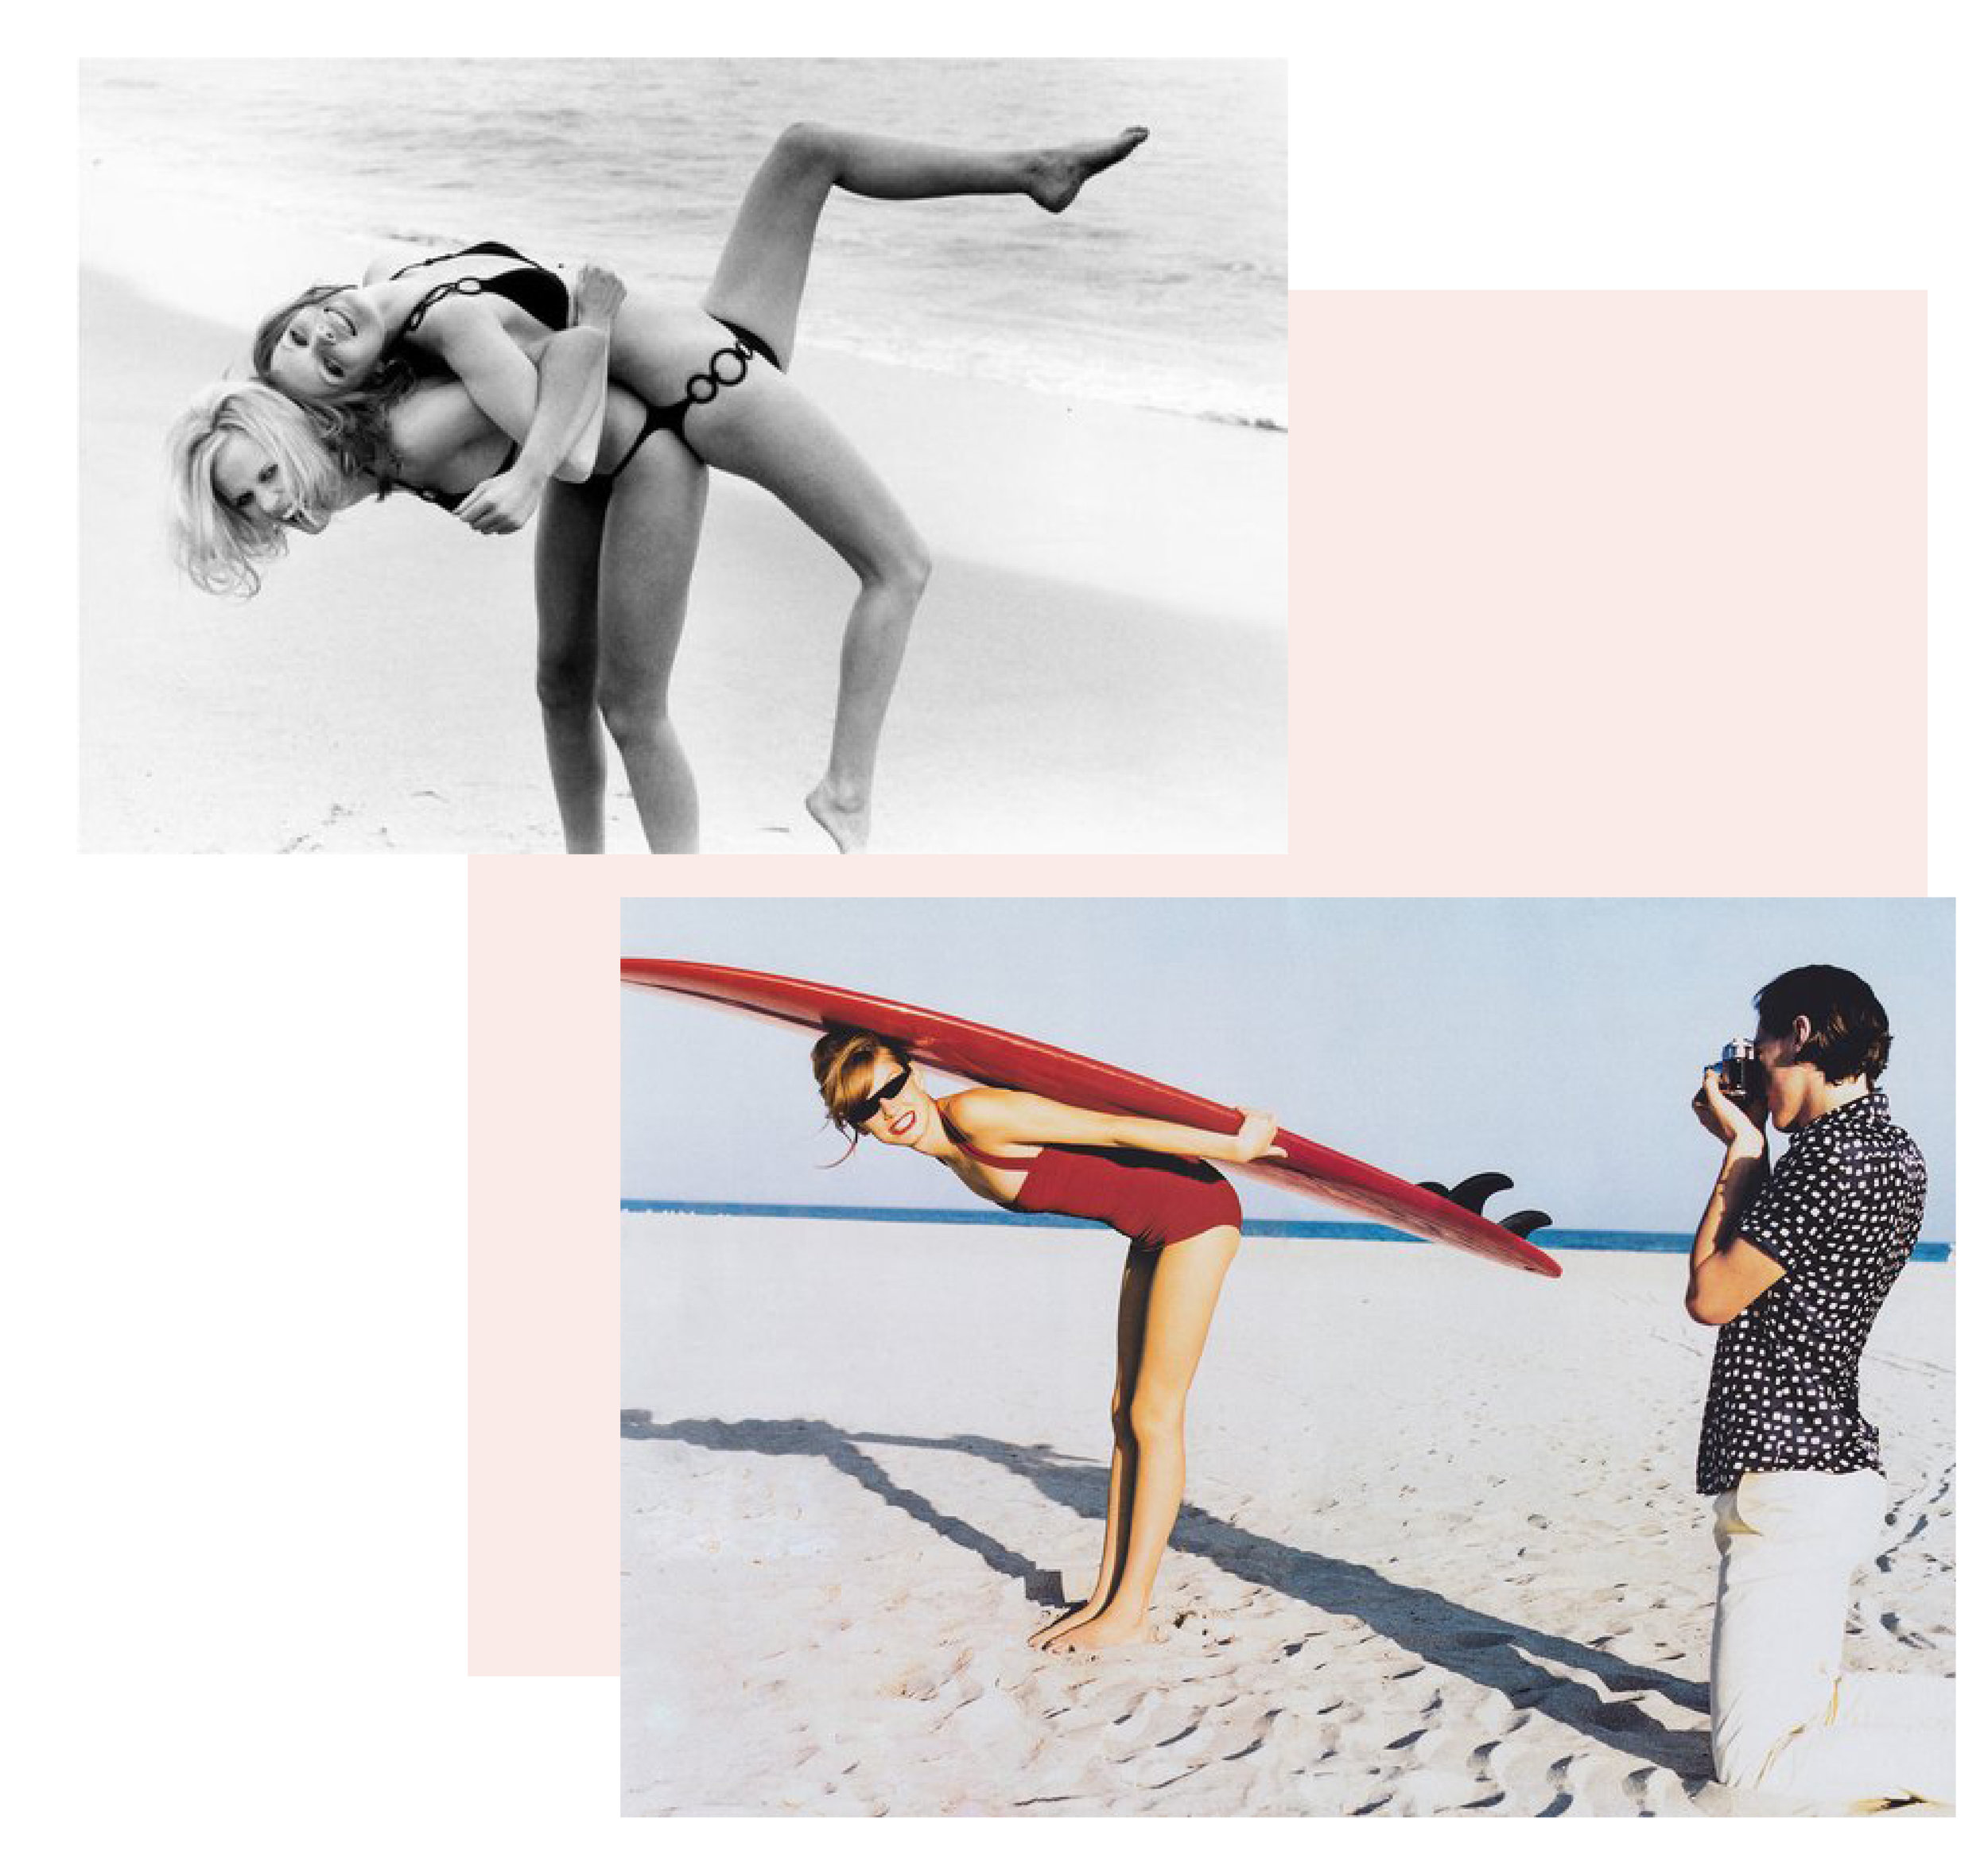 Summer-snaps-by-favourite-fashion-photographers-ellen-von-unwerth-swimsuit-bikini-swimming-surfing-beach-editorial-01